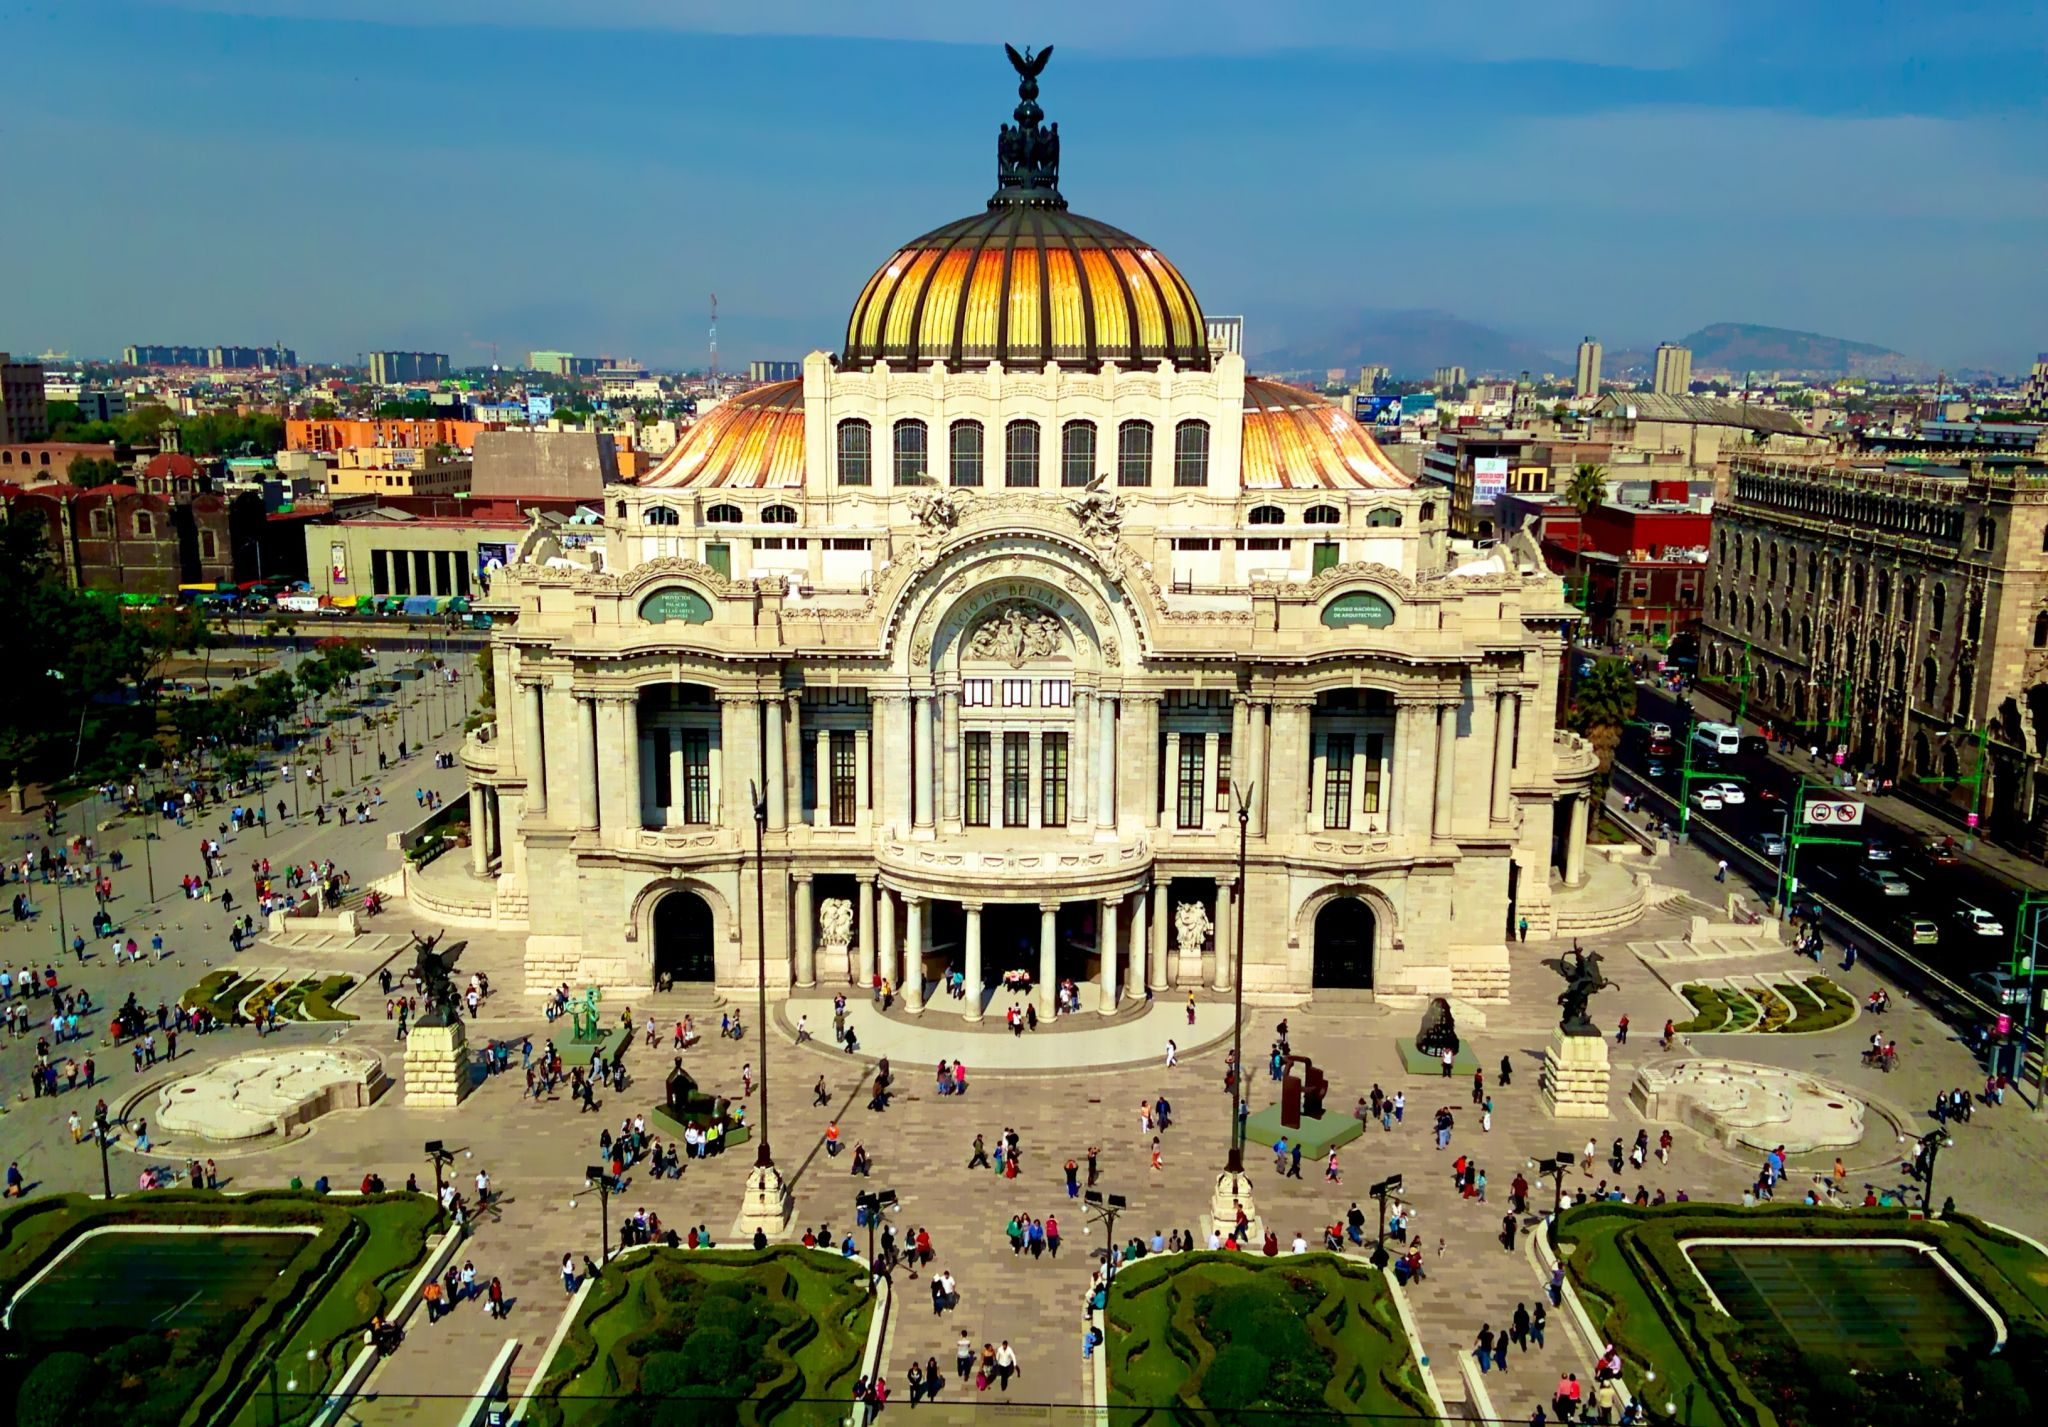 The grand facade of Palacio de Bellas Artes